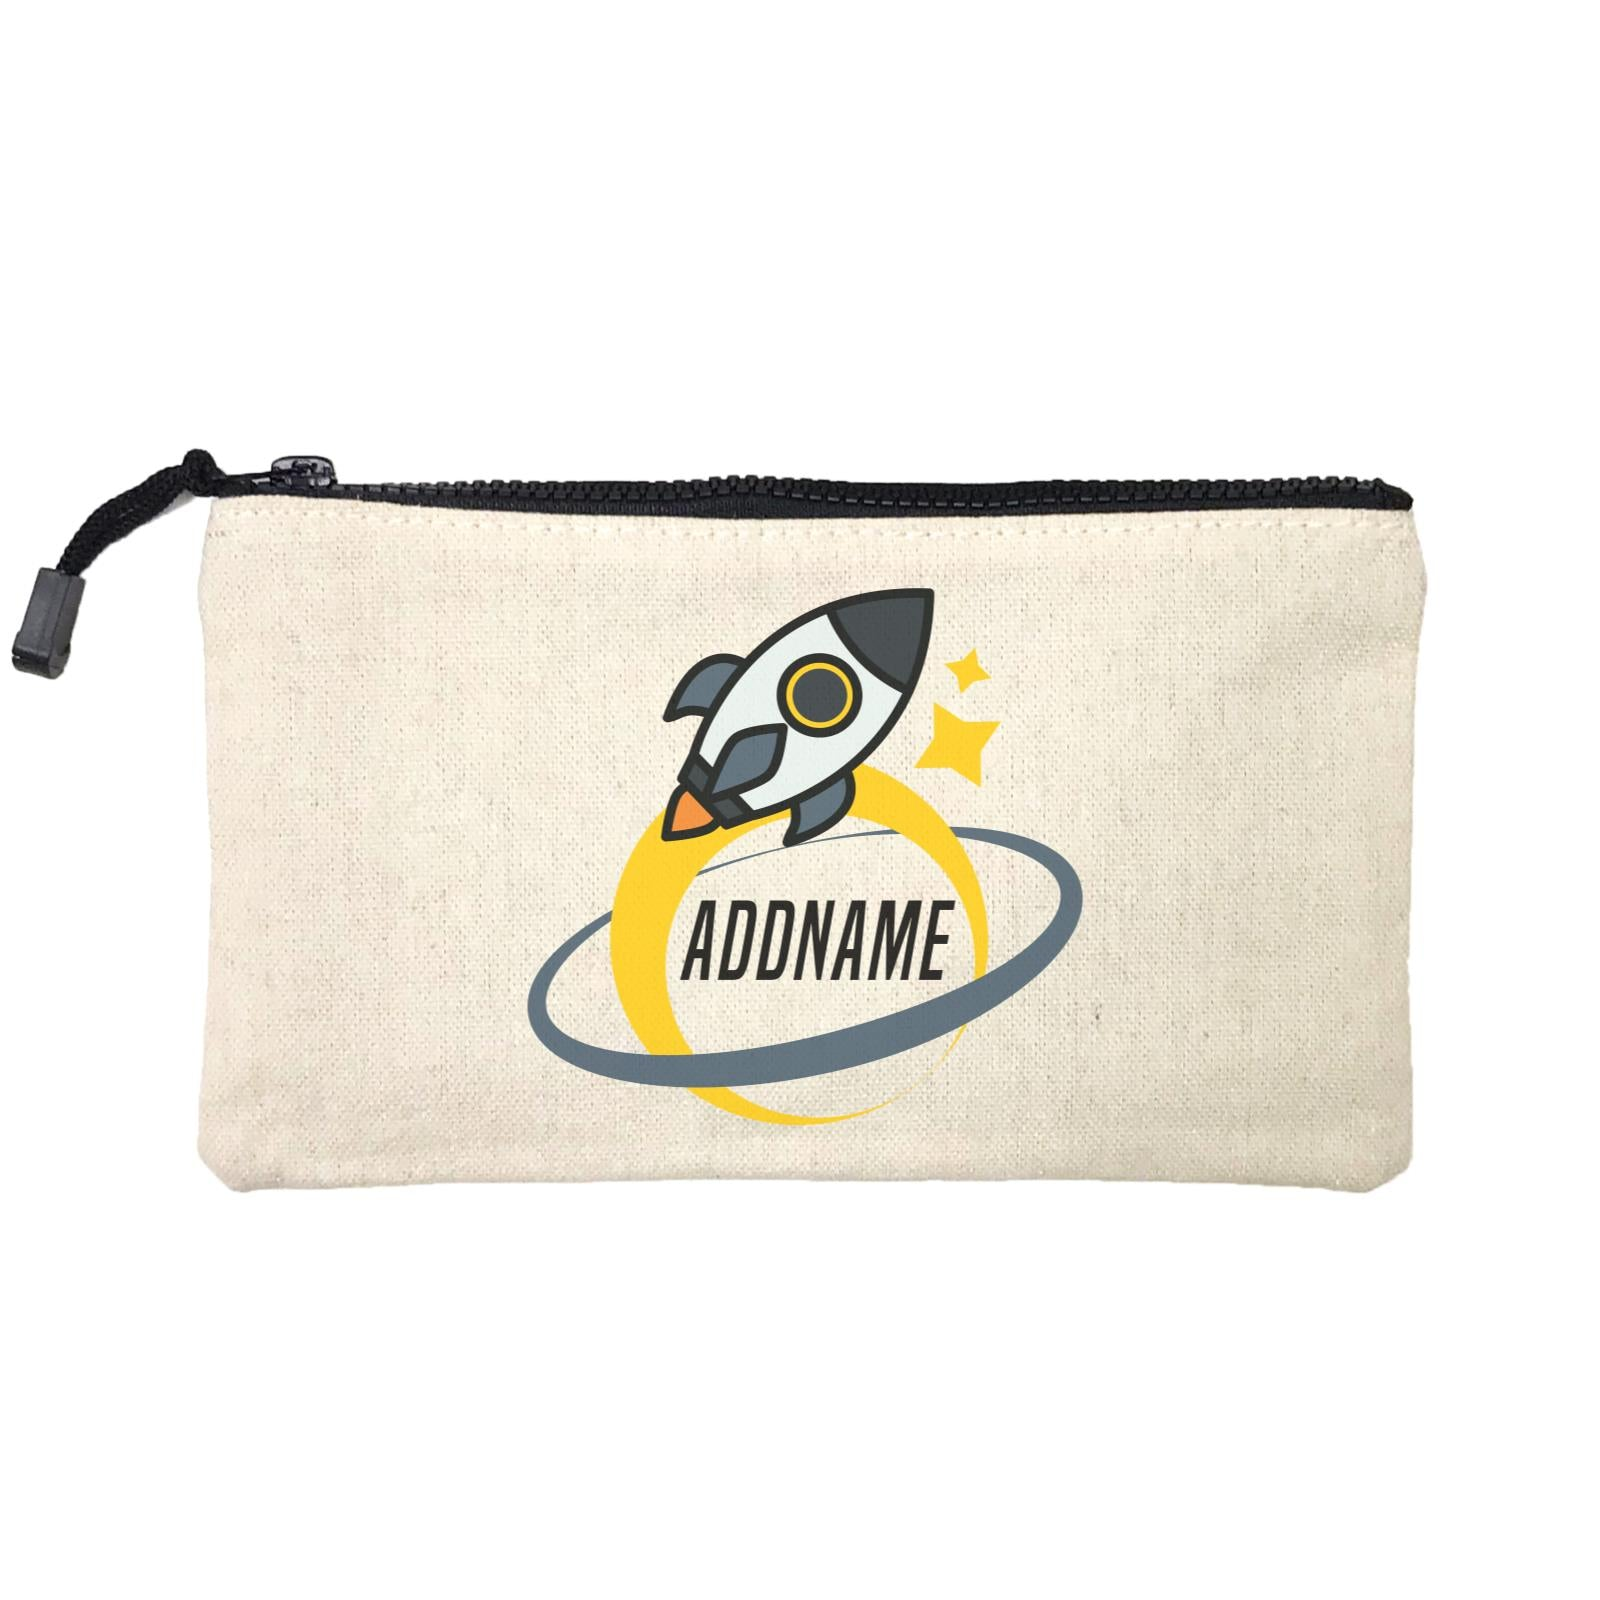 Birthday Rocket To Galaxy Moon And Star Addname Mini Accessories Stationery Pouch